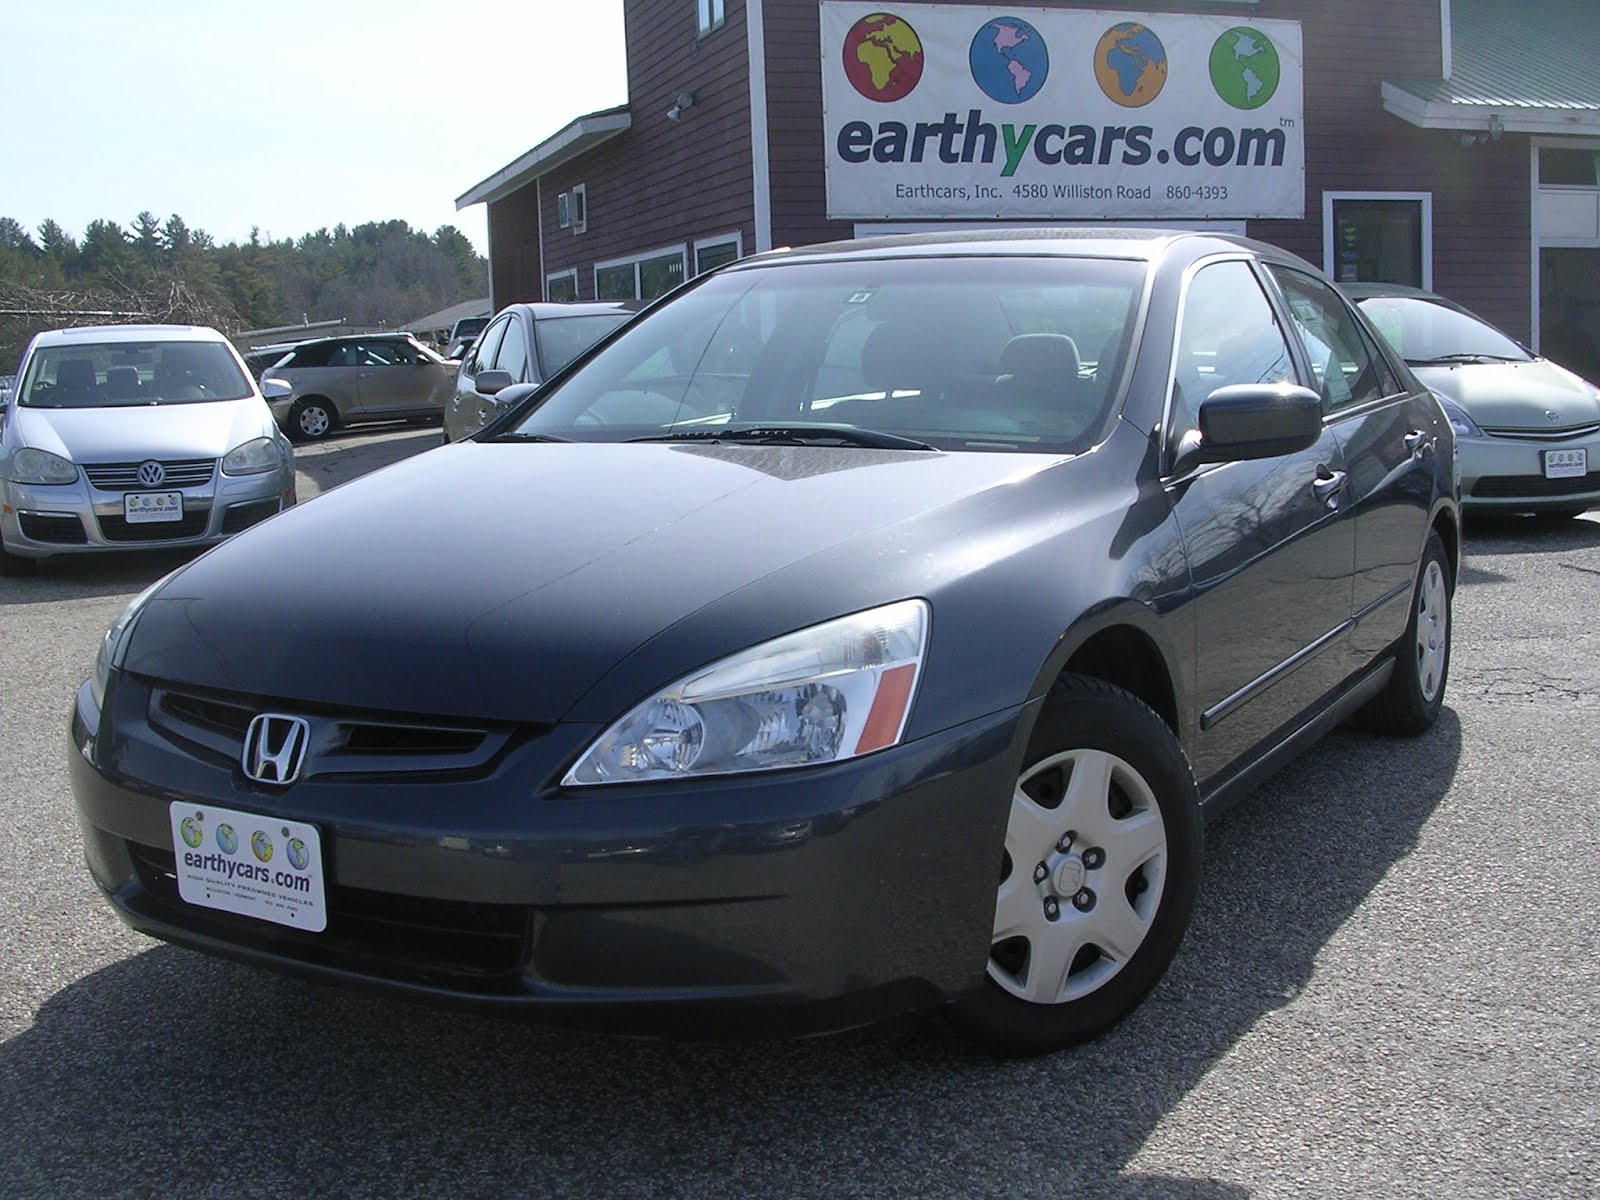 earthy cars blog earthy car of the week 2005 honda accord 2 4 lx. Black Bedroom Furniture Sets. Home Design Ideas